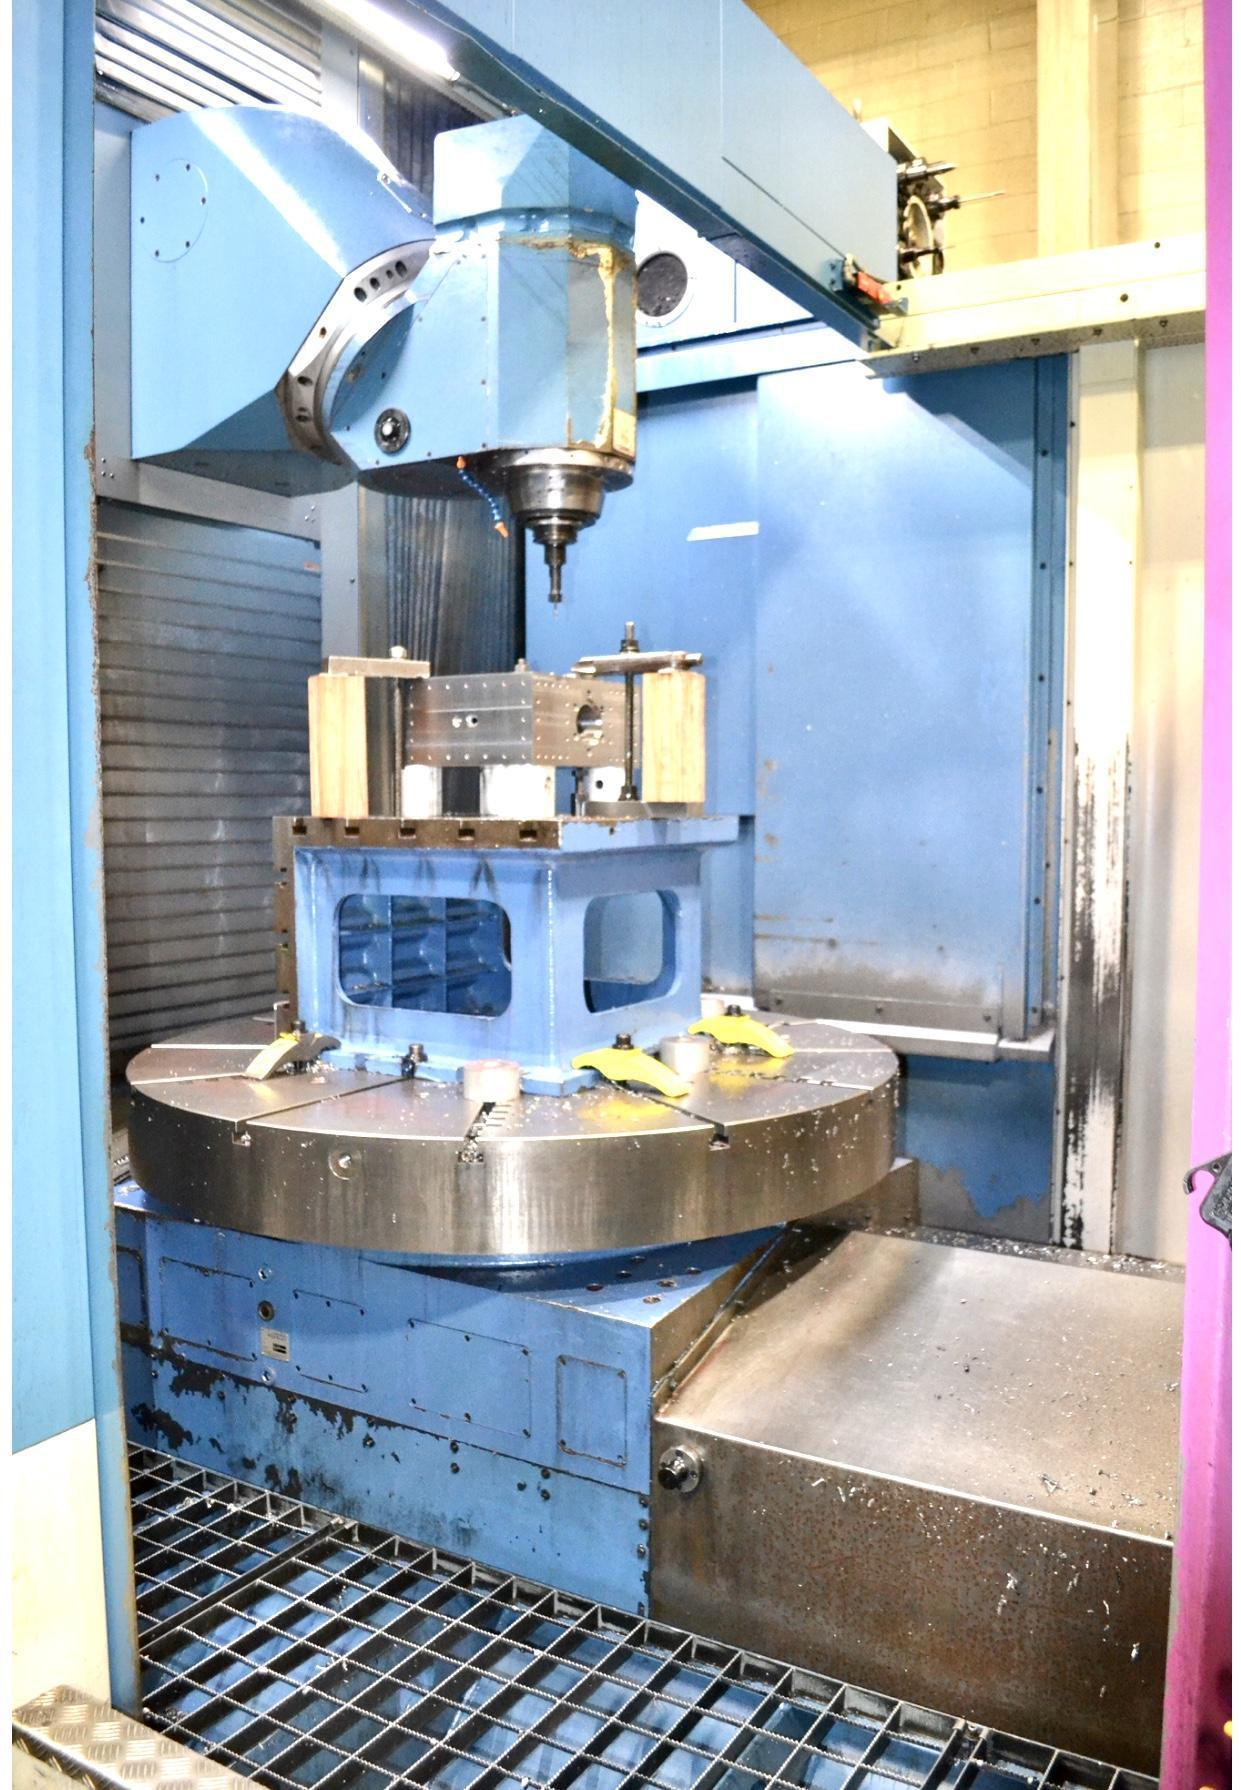 Used Ibarmia Model THC 22 Multiprocess Center with Siemens 840D CNC (Installed new in 2013)